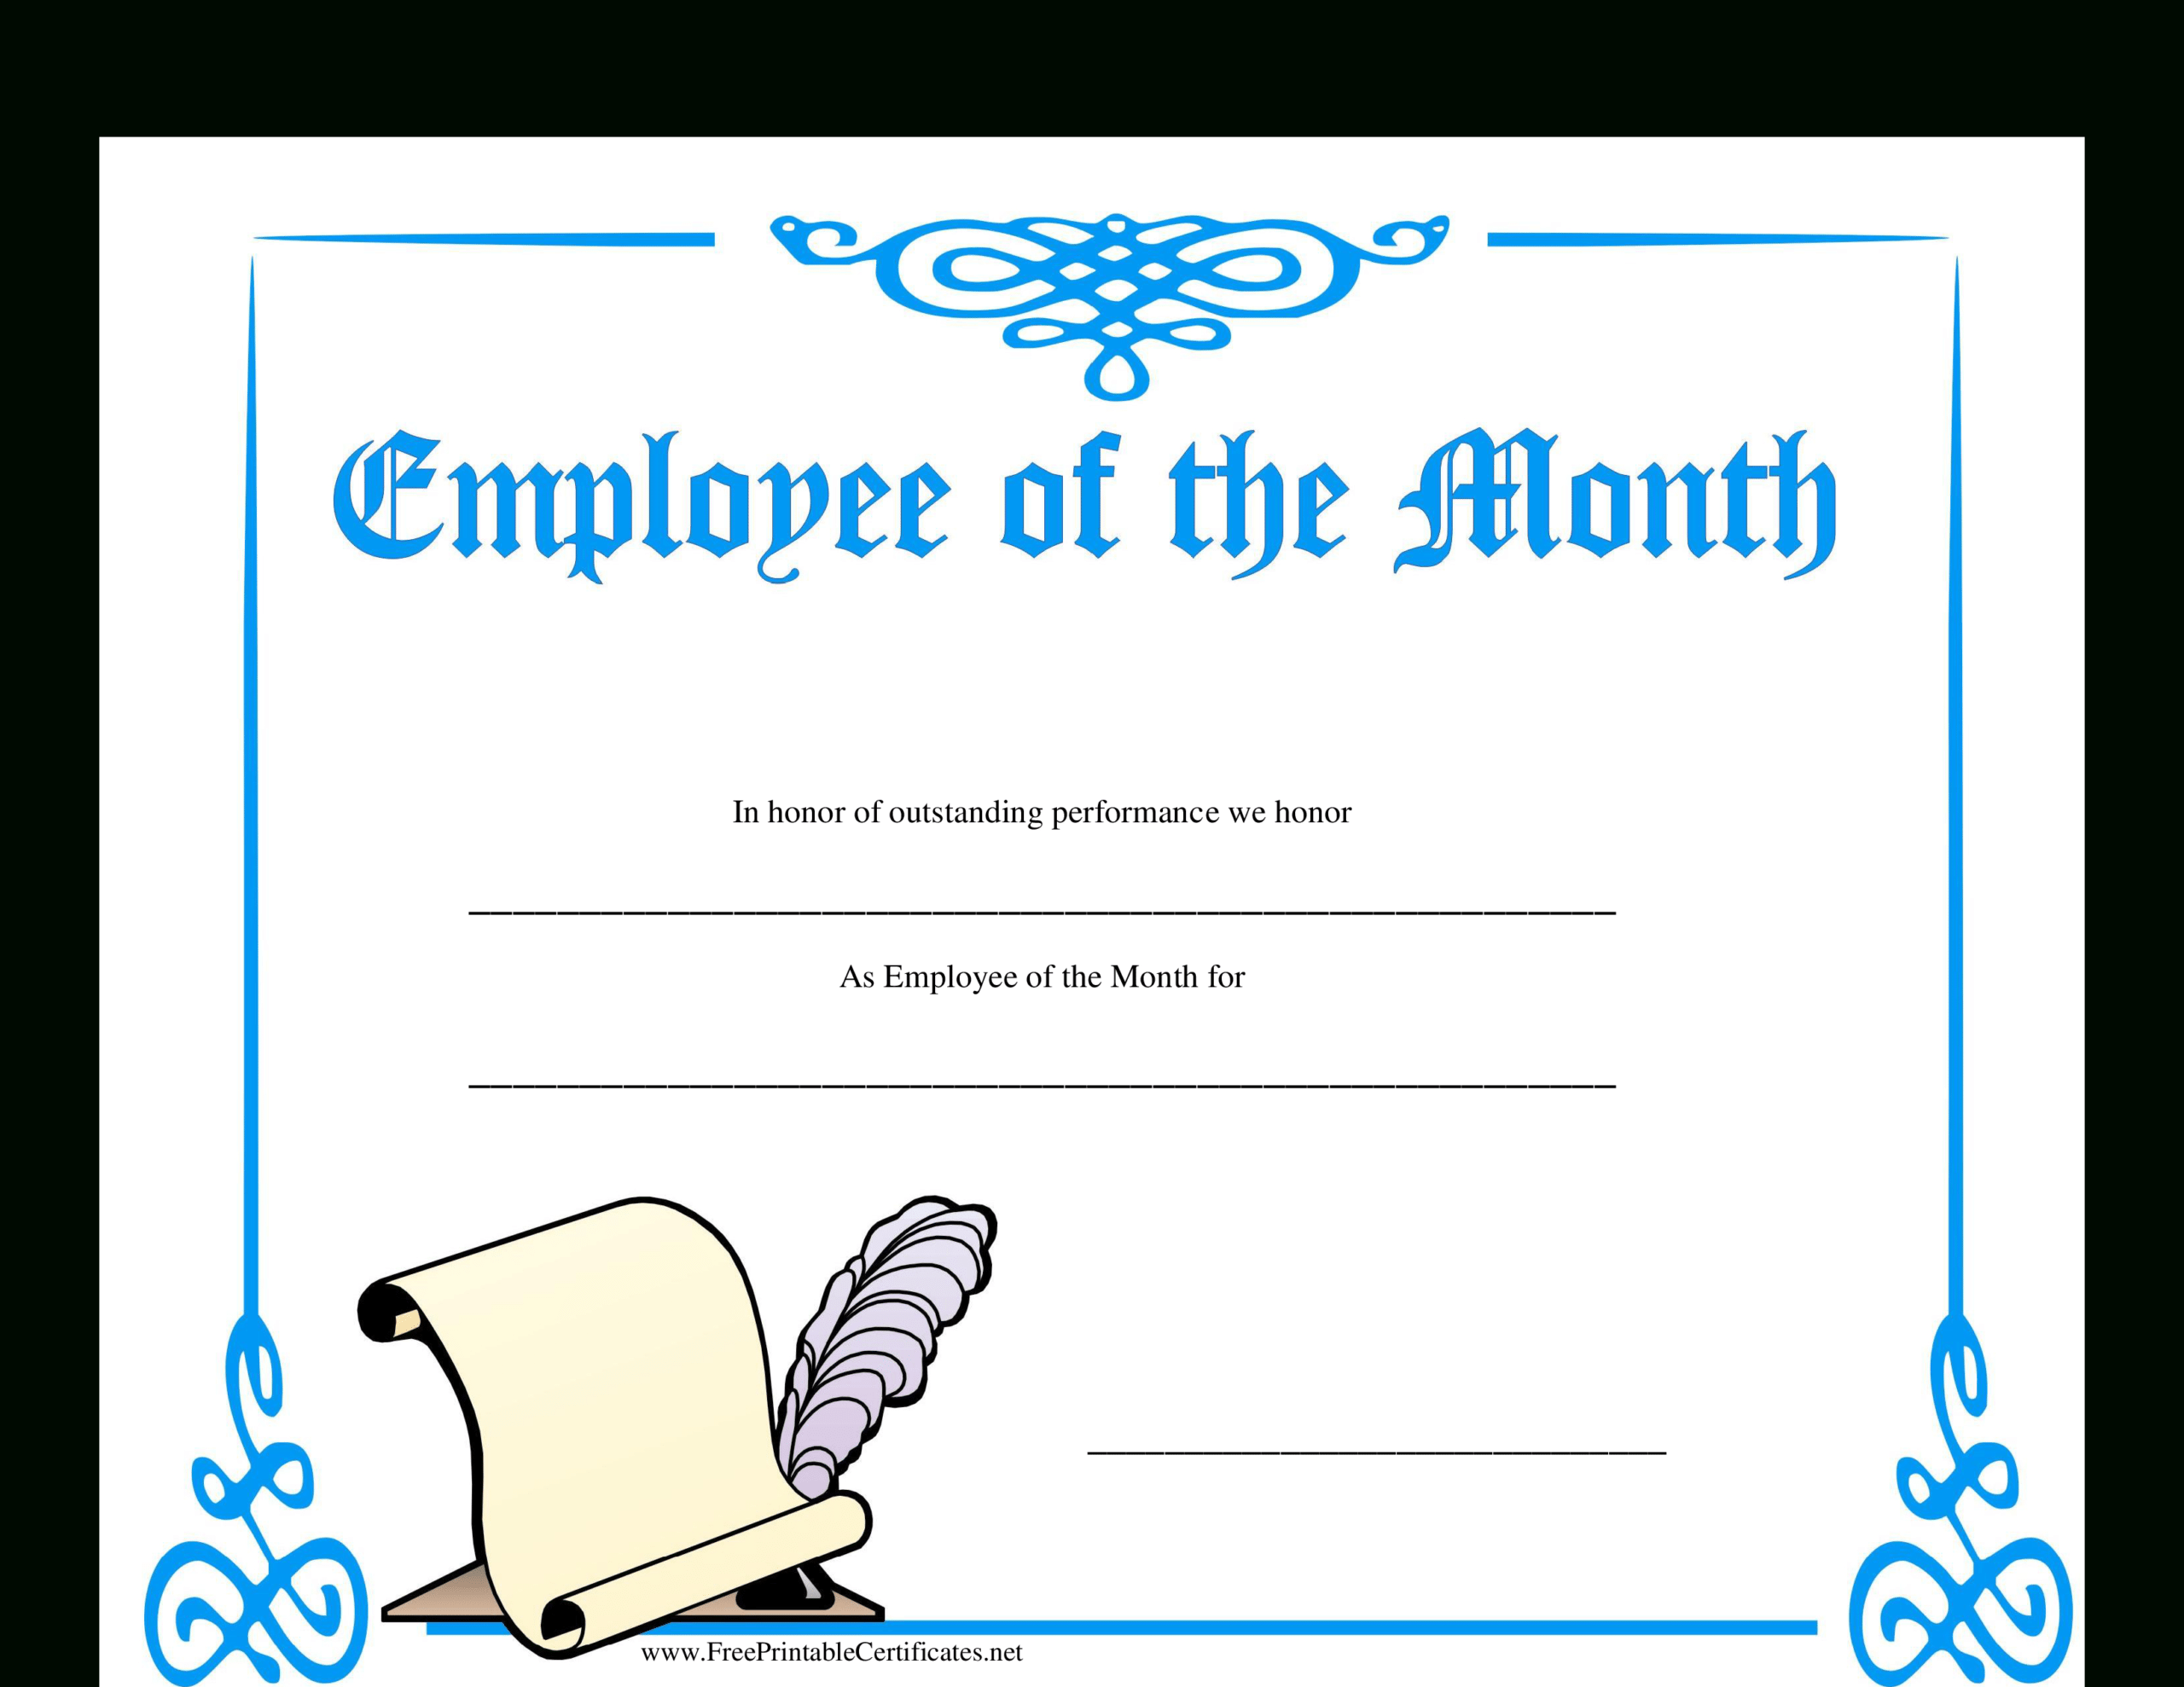 Employee Of The Month Certificate   Templates At Throughout Employee Of The Month Certificate Template With Picture